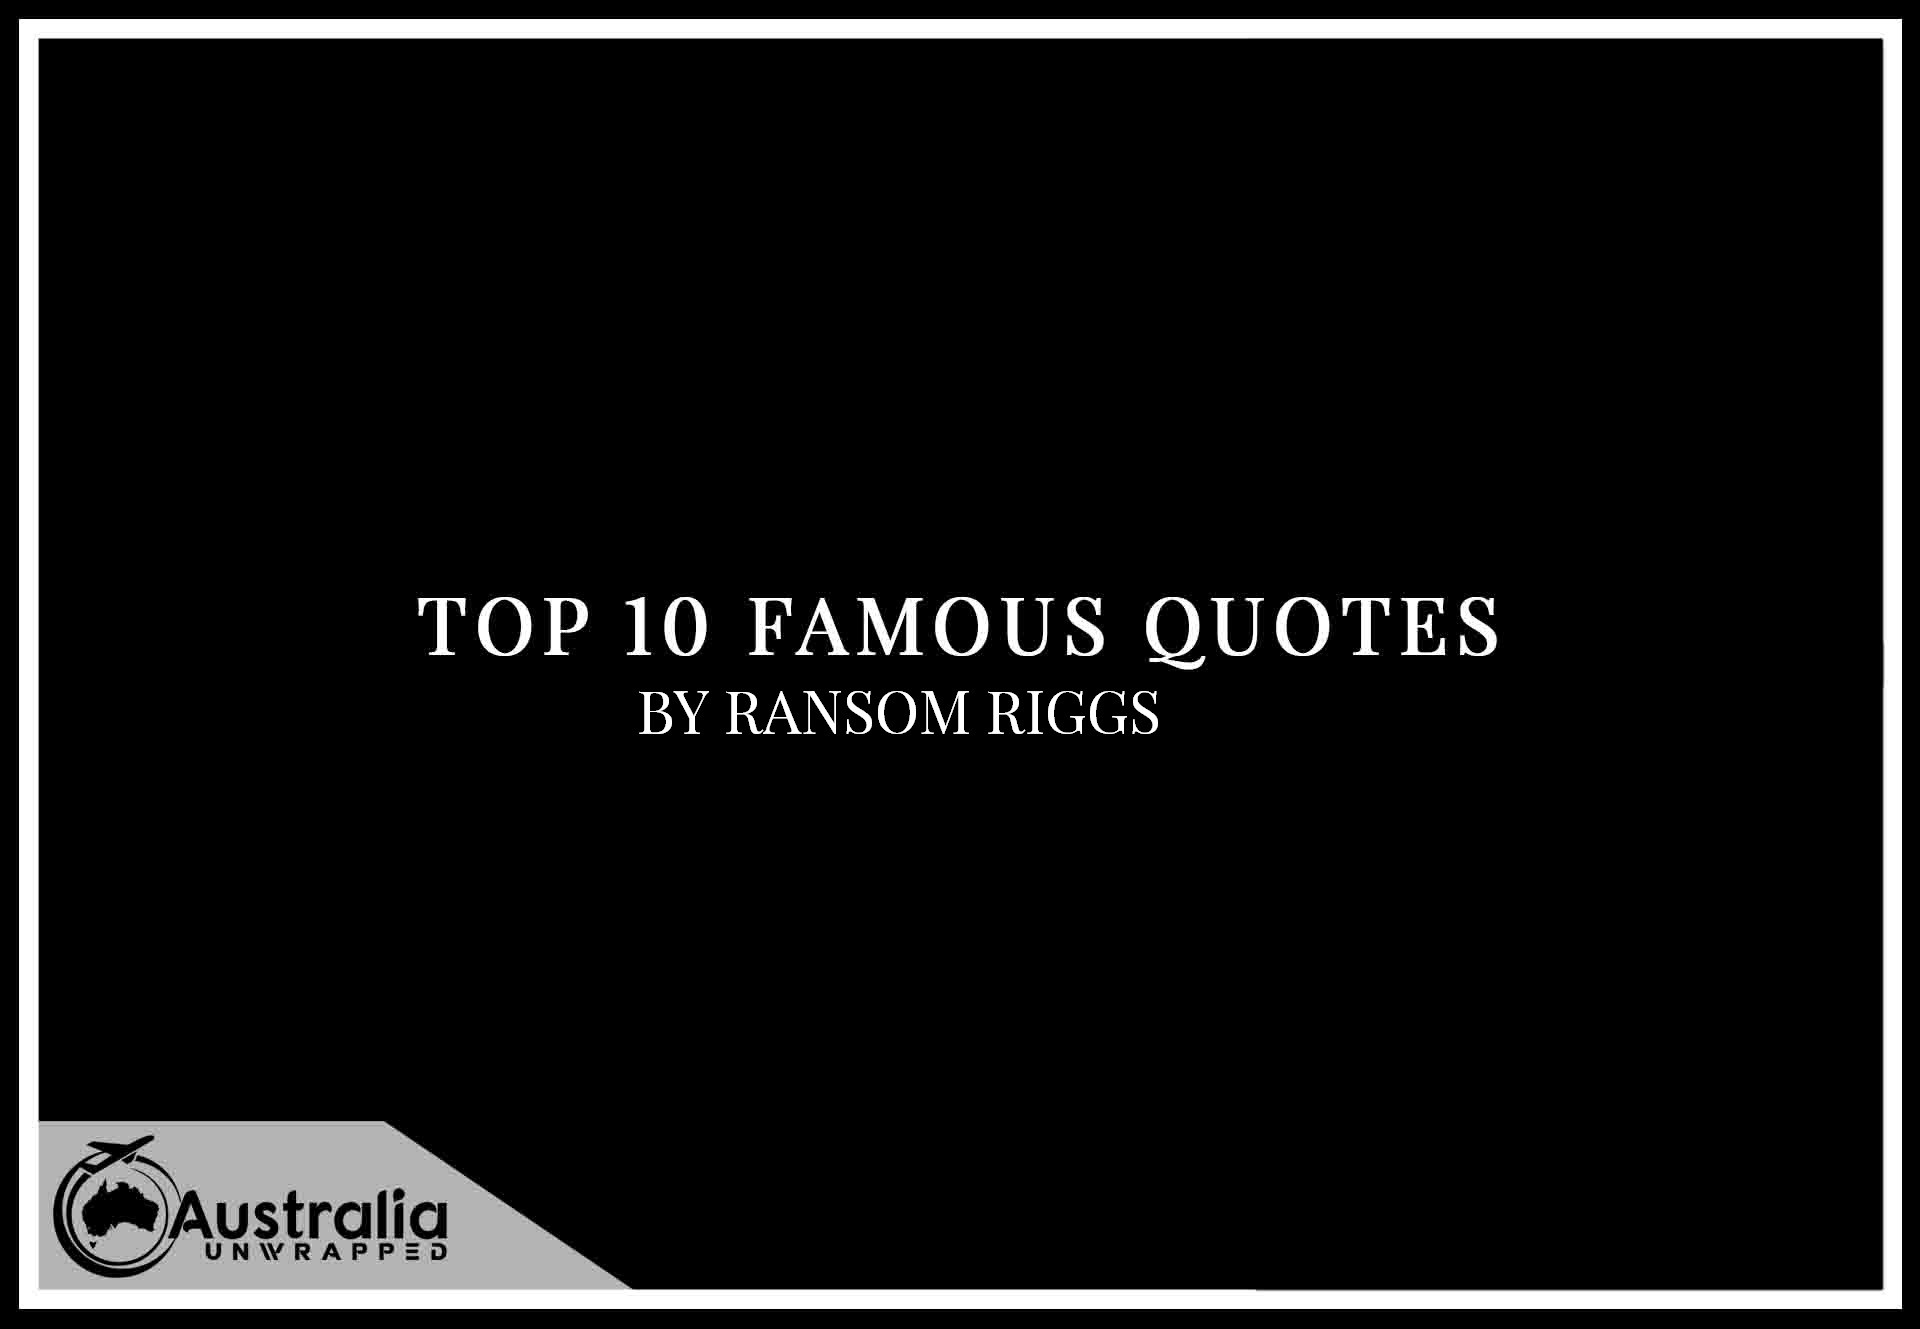 Top 10 Famous Quotes by Author Ransom Riggs